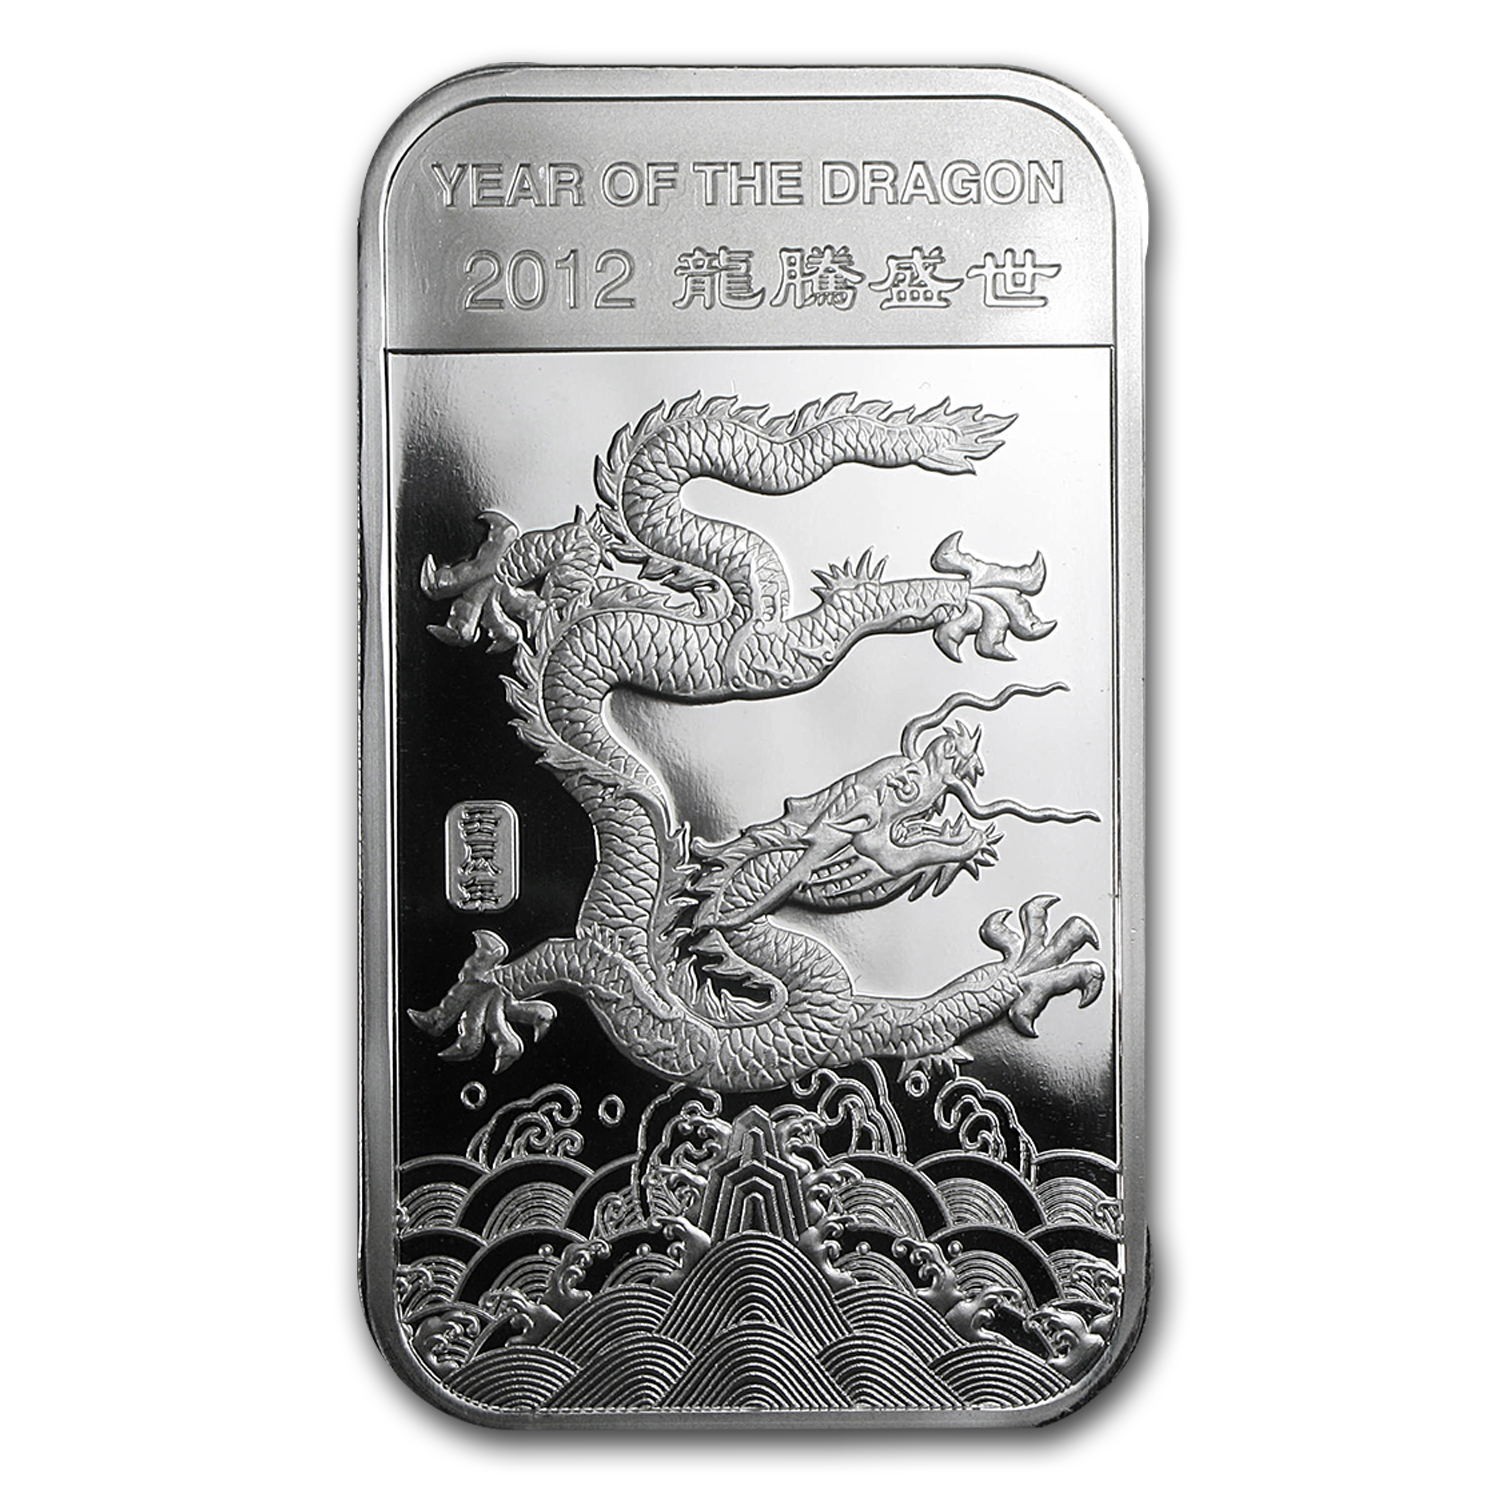 5 oz Silver Bar - APMEX (2012 Year of the Dragon)